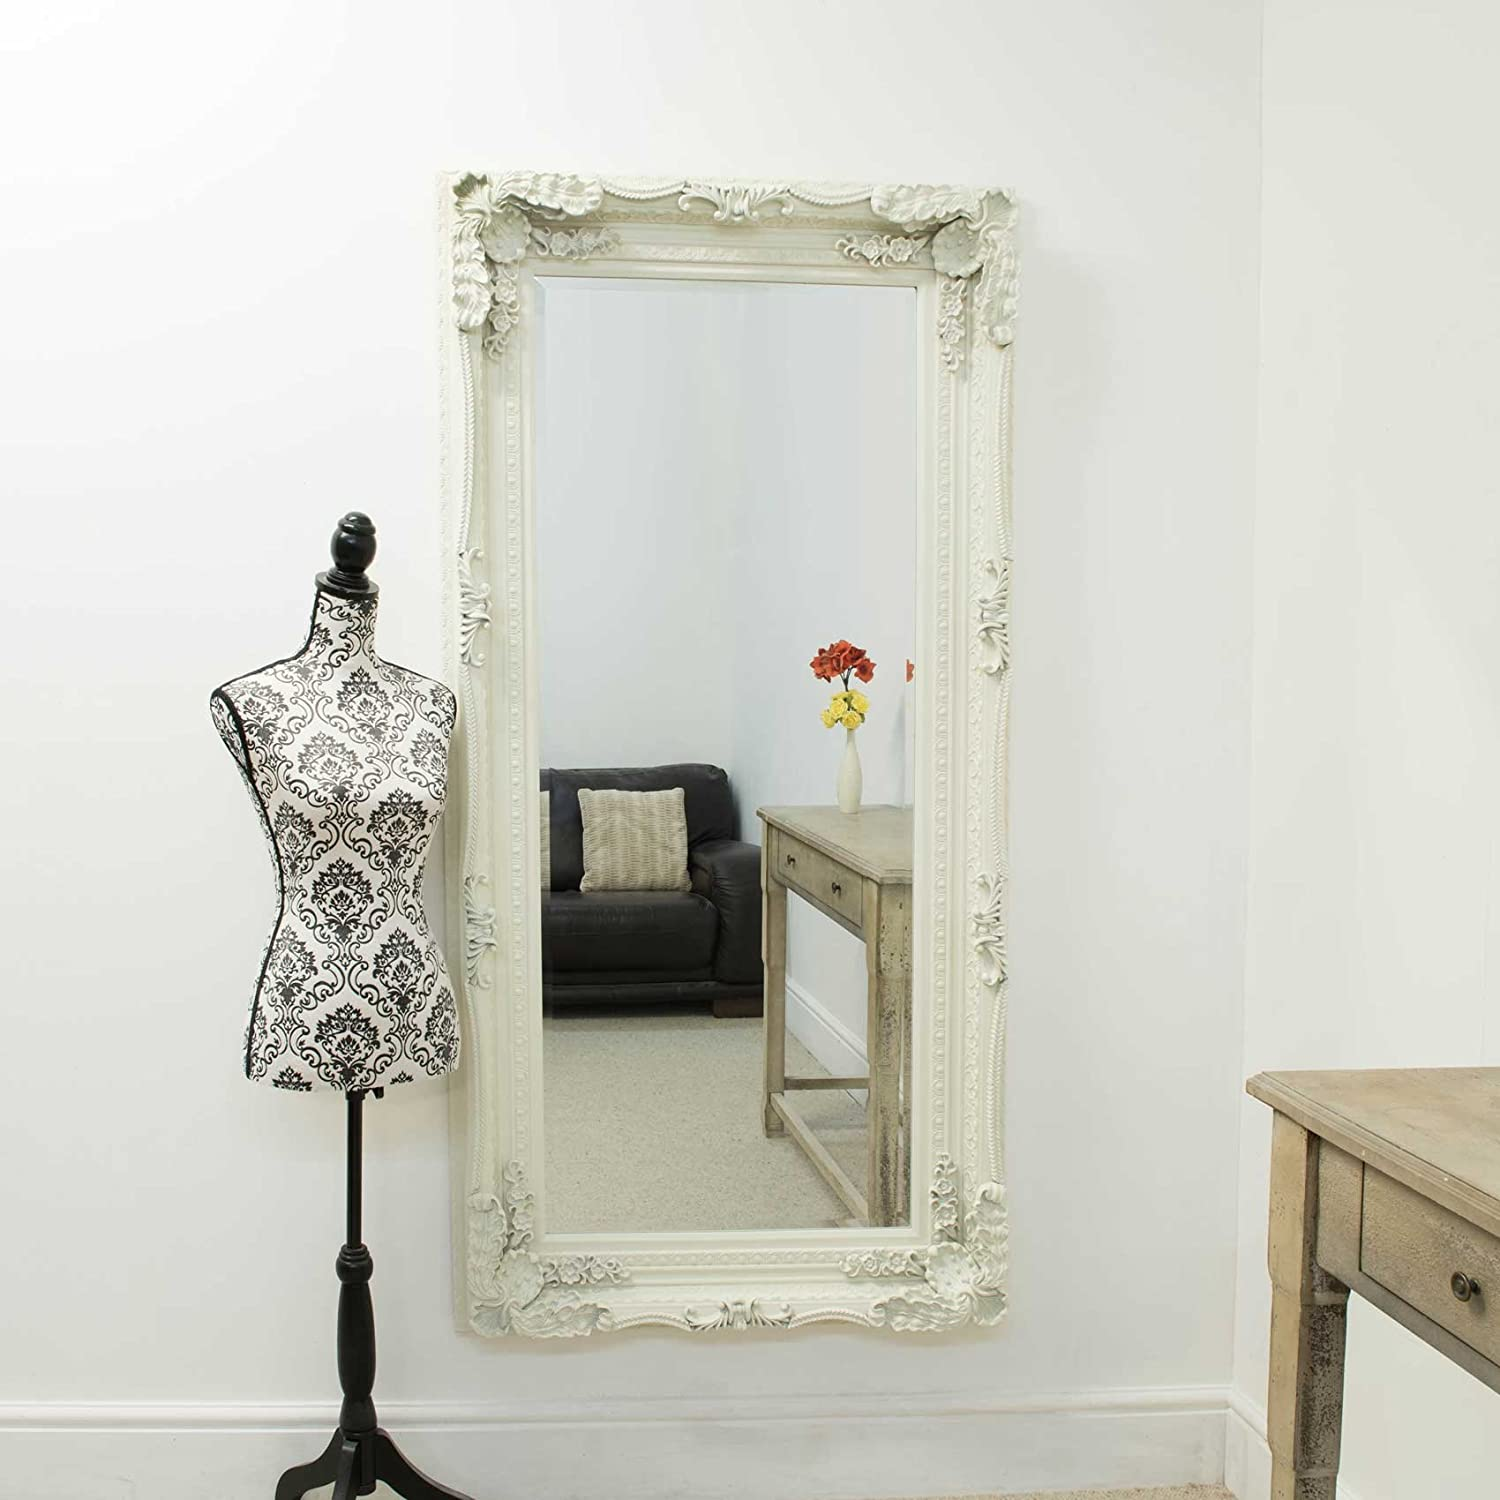 Ivory White Large French Elaborate Wall Mirror 6ft x 3ft Full Length Dressing Mirror